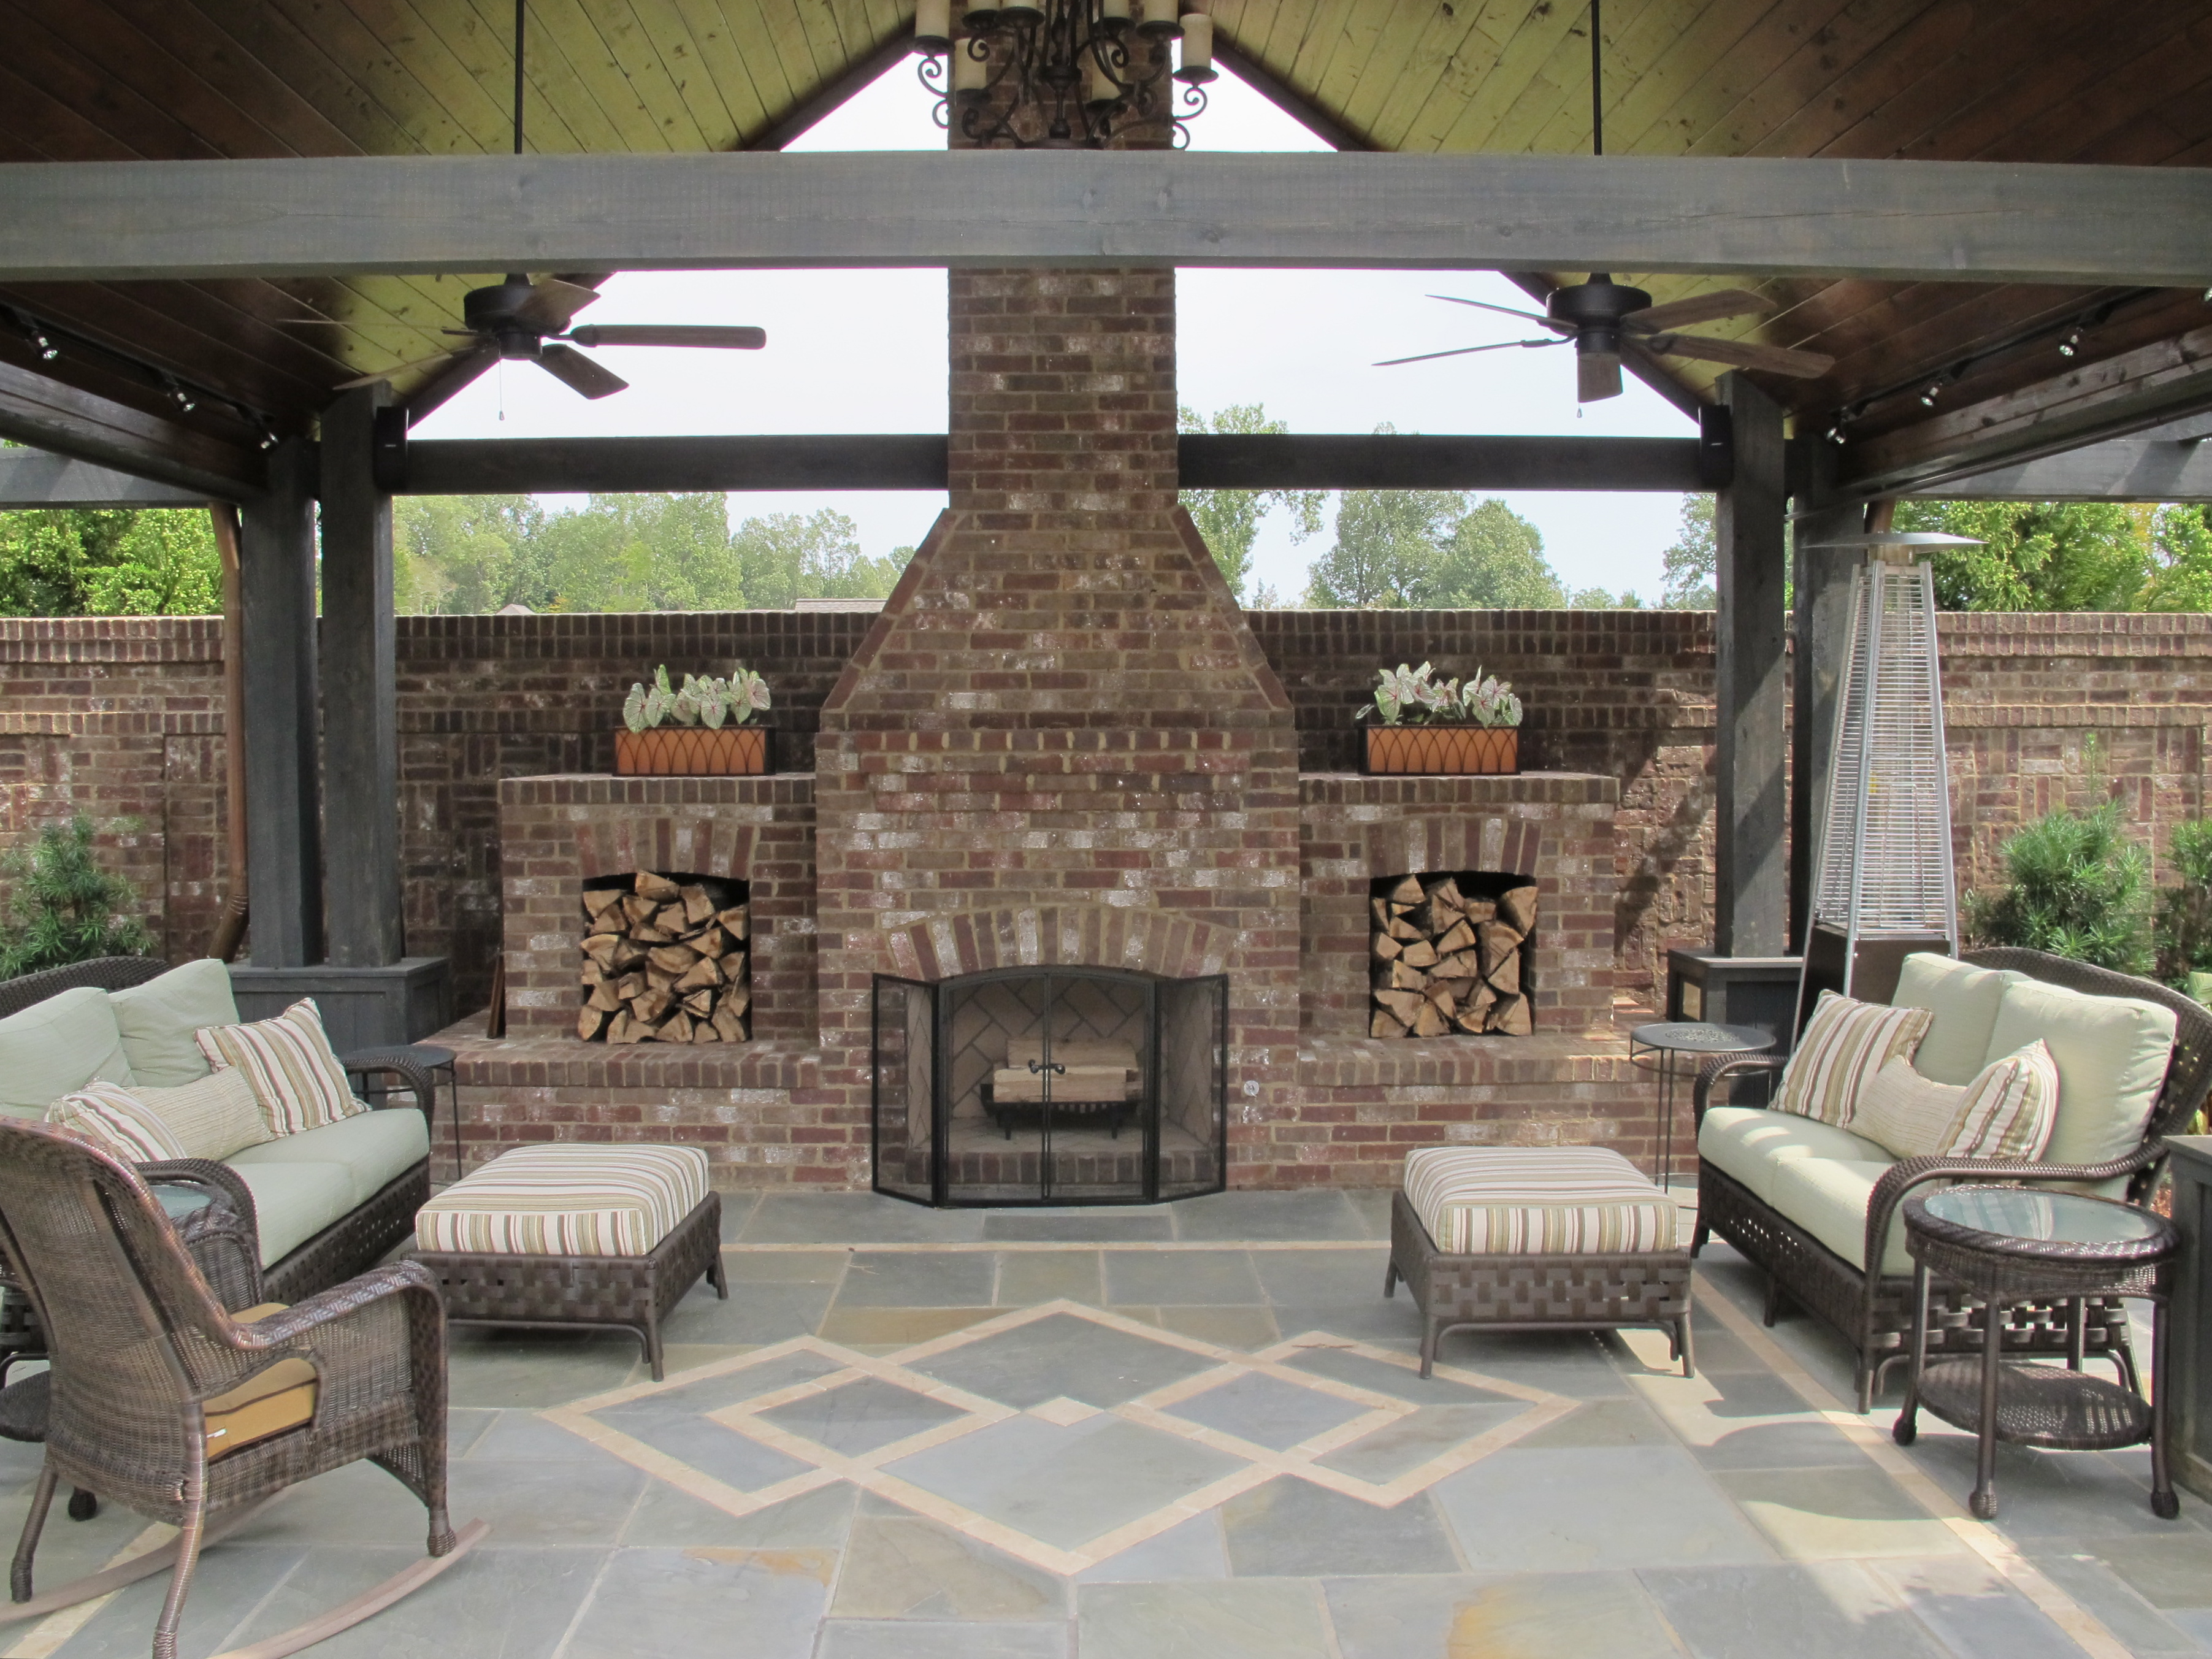 General Shale Outdoor Living - South Alabama Brick Company on Outdoor Living Company id=34961